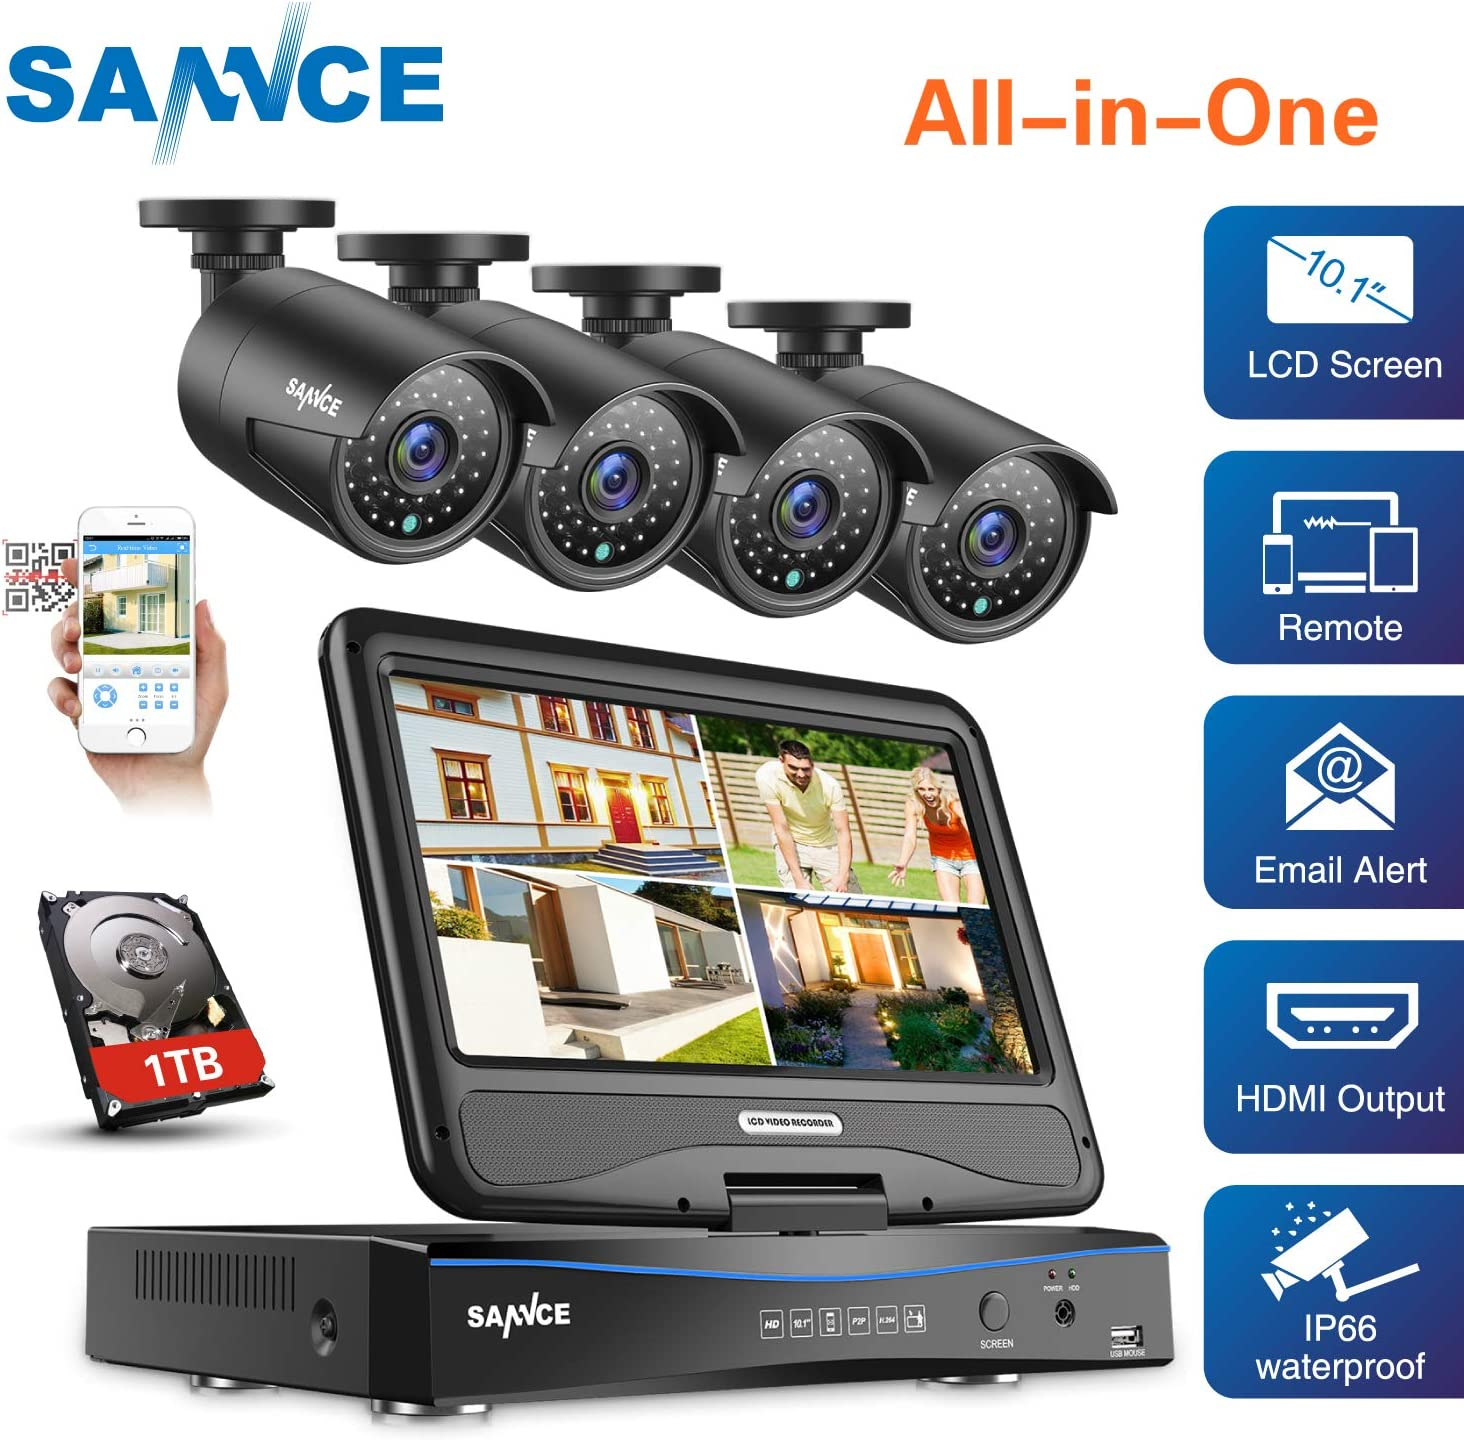 True All-in-One Home Security Camera System with Built-in 10.1 LCD Monitor,SANNCE 4CH 1080P Surveillance DVR Recorder with 4Pcs Metal 120ft Night Vision Cameras, Easy Remote Access,1TB HDD Included